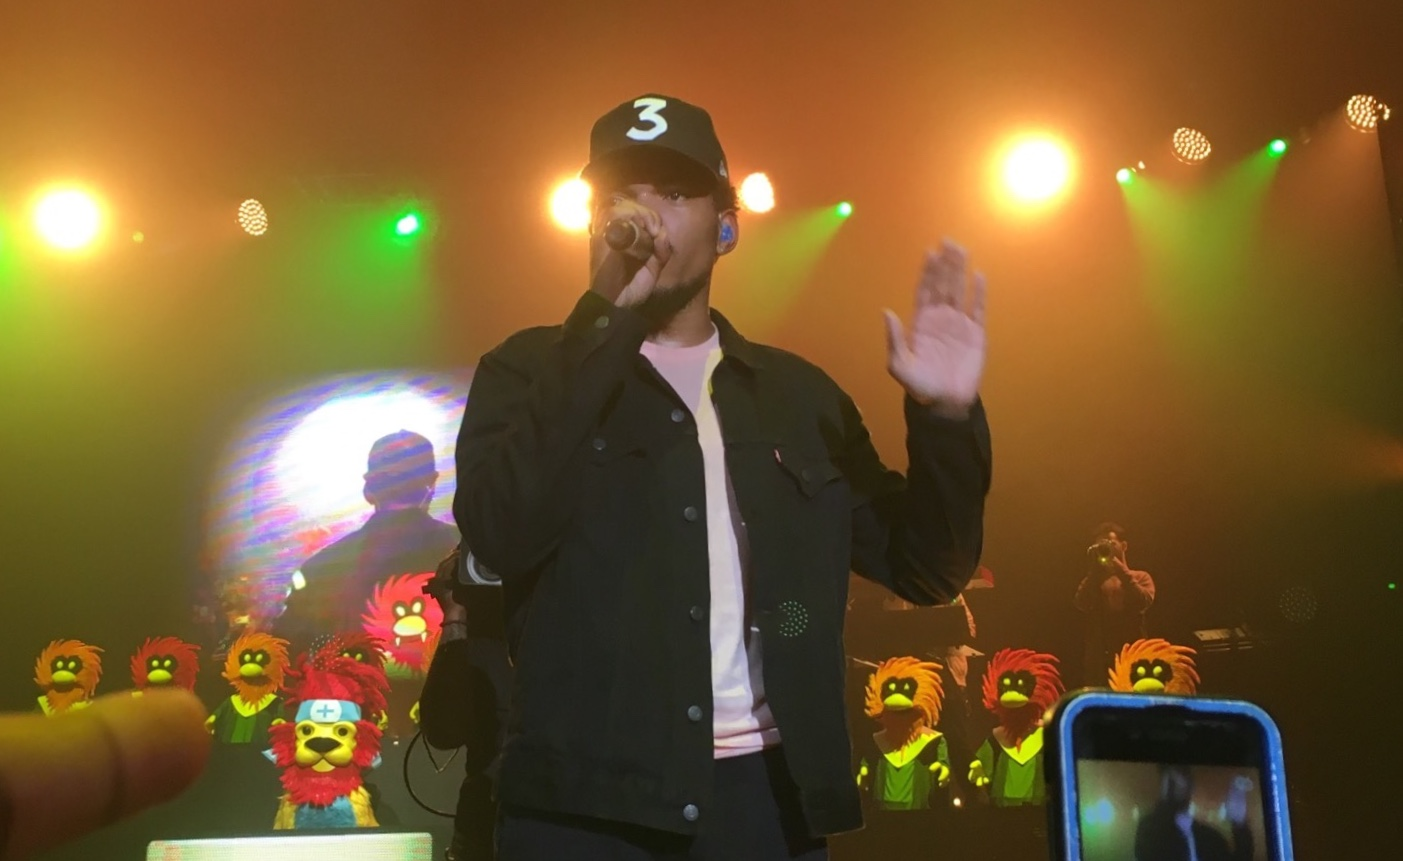 """Magnificent"" concertgoing: Chance the Rapper concert review"